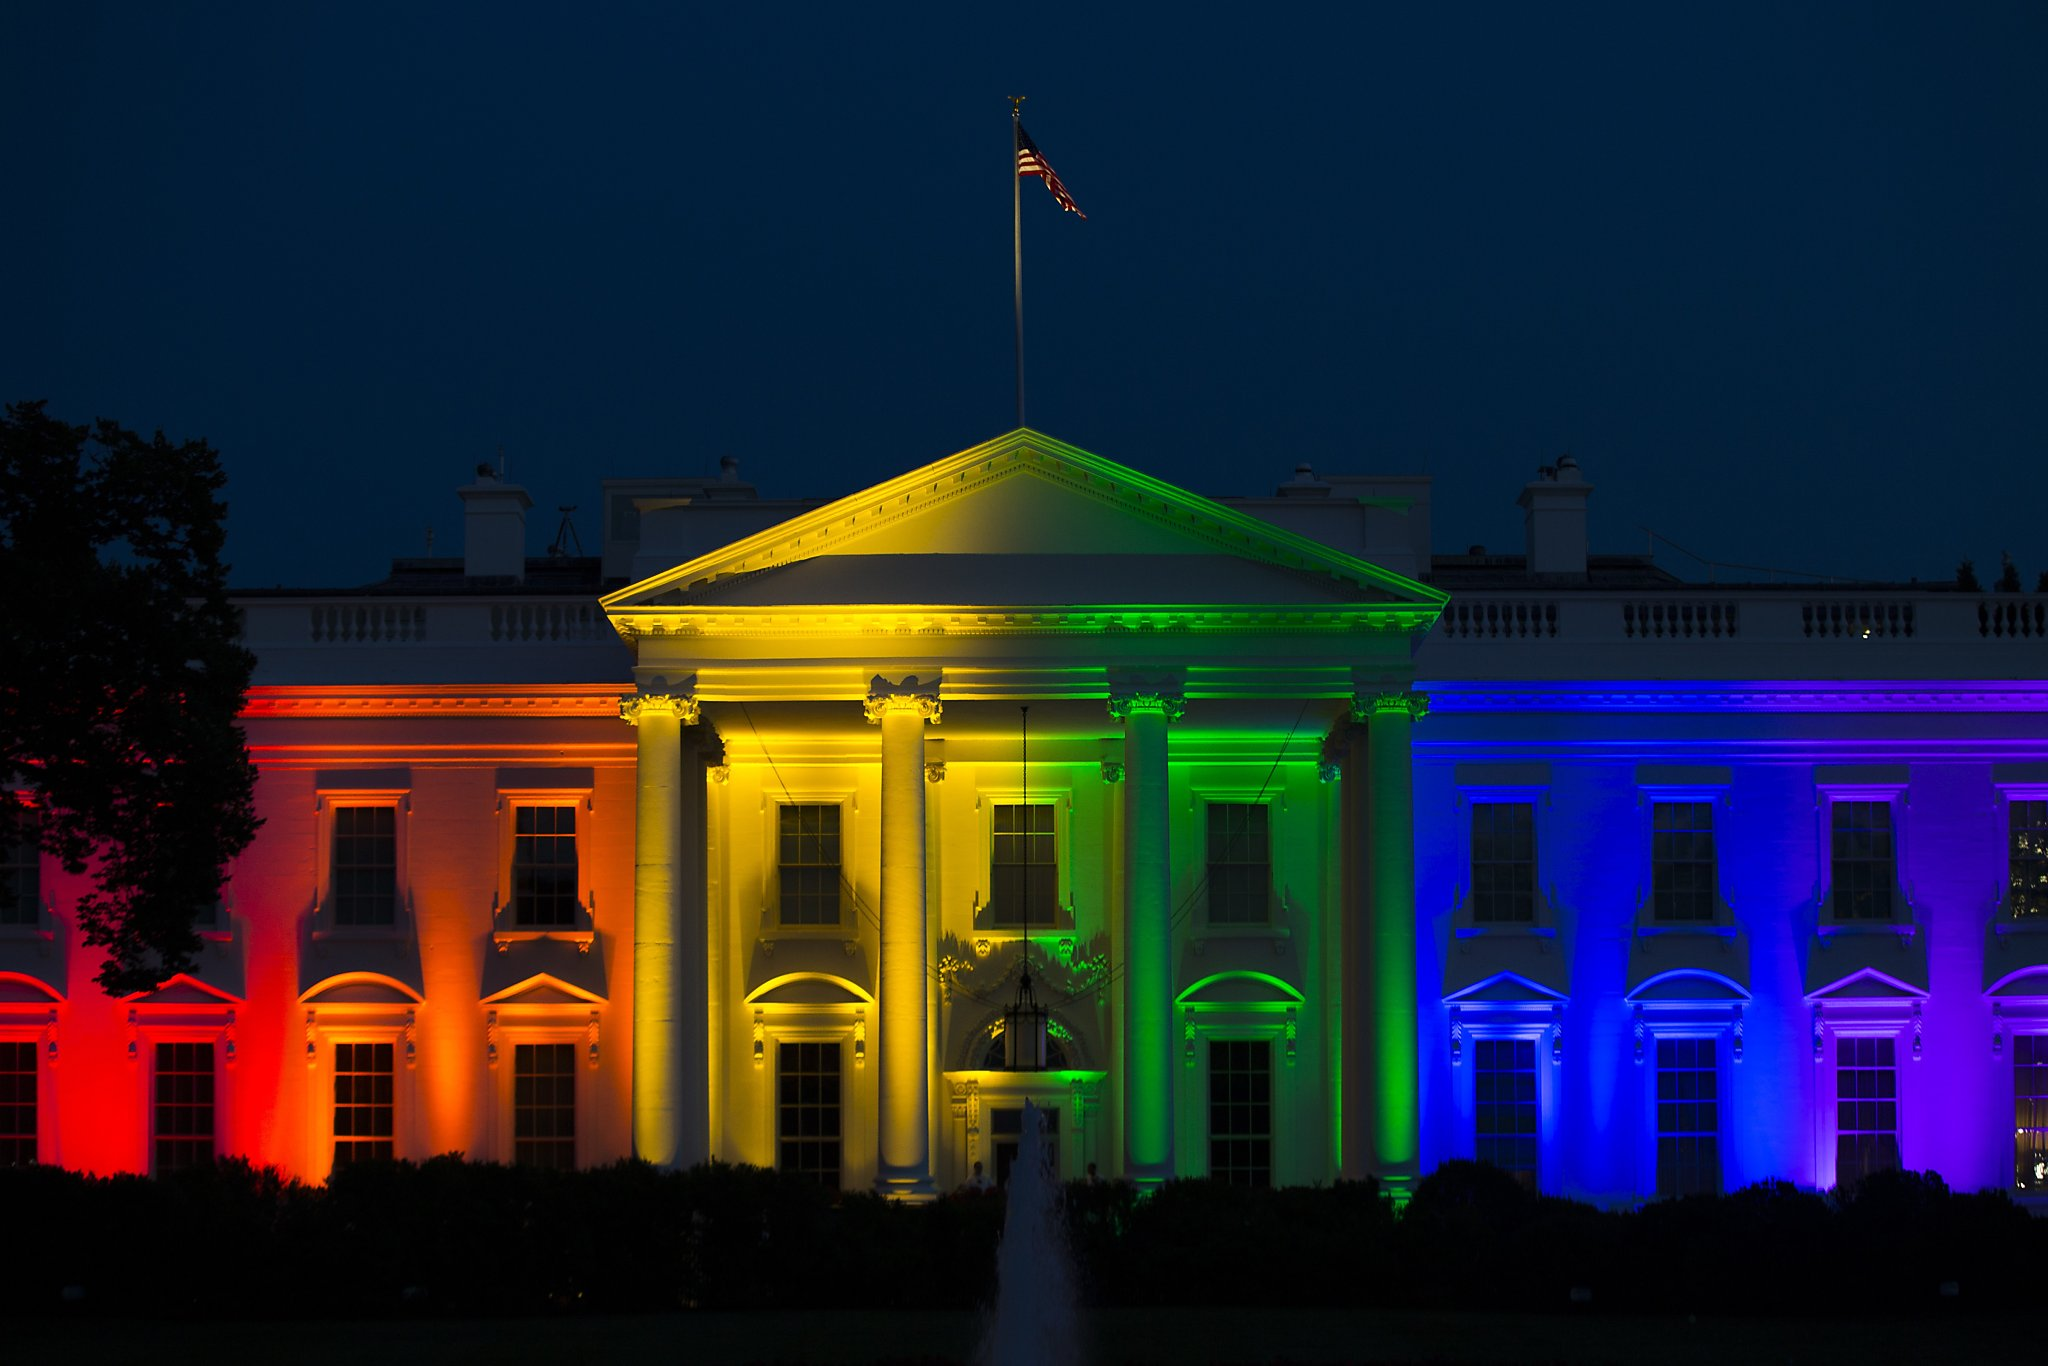 California supreme court gay marriage decision